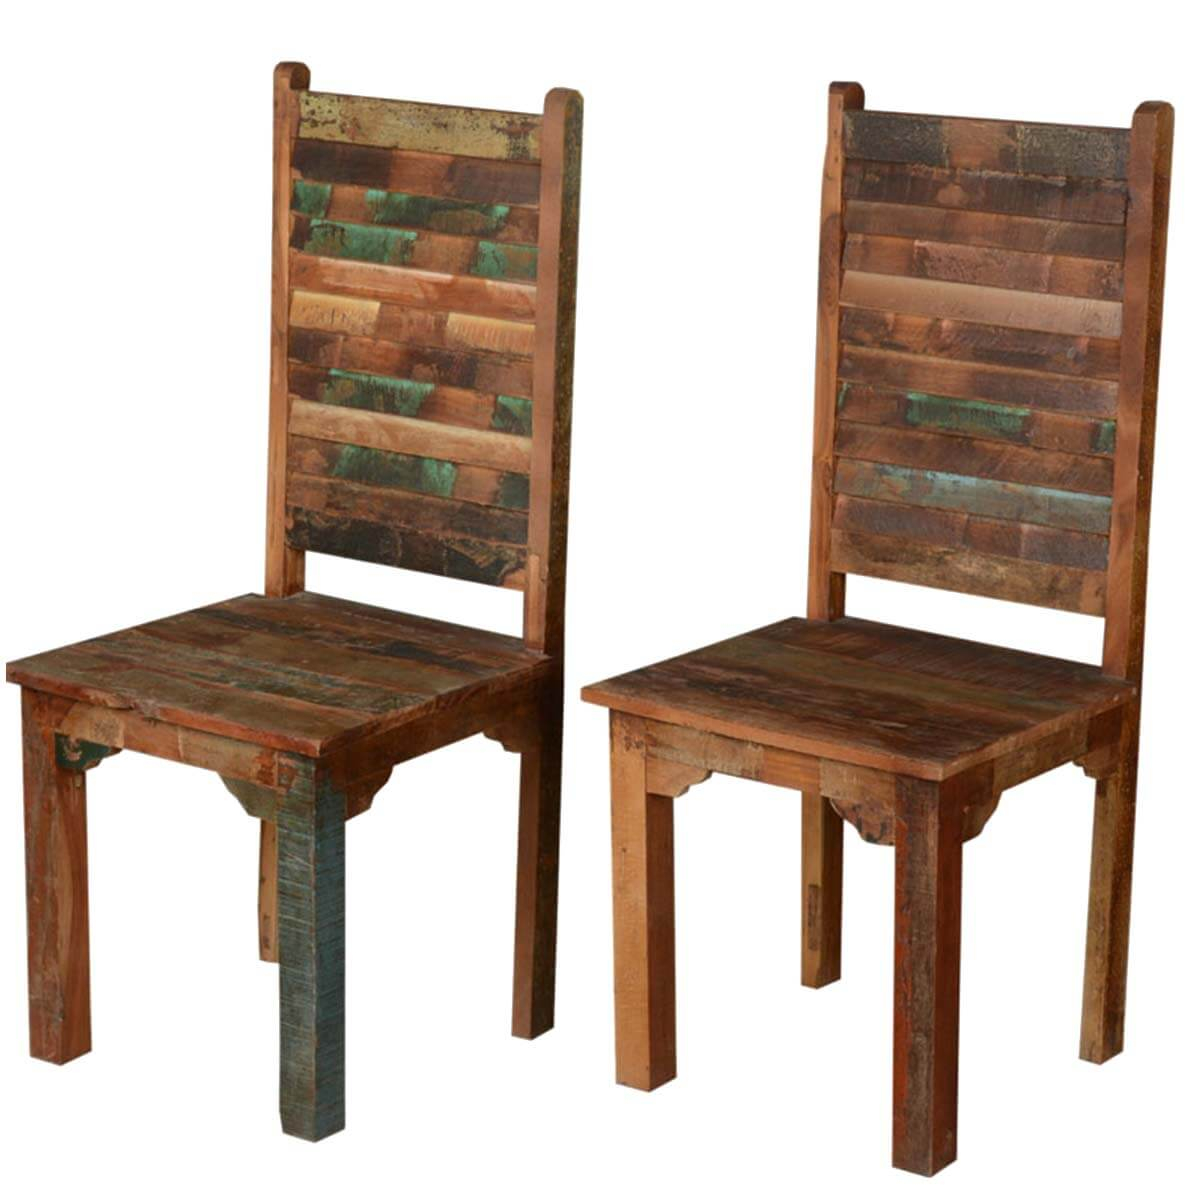 wooden restaurant chairs gaming chair pc rustic distressed reclaimed wood multi color dining